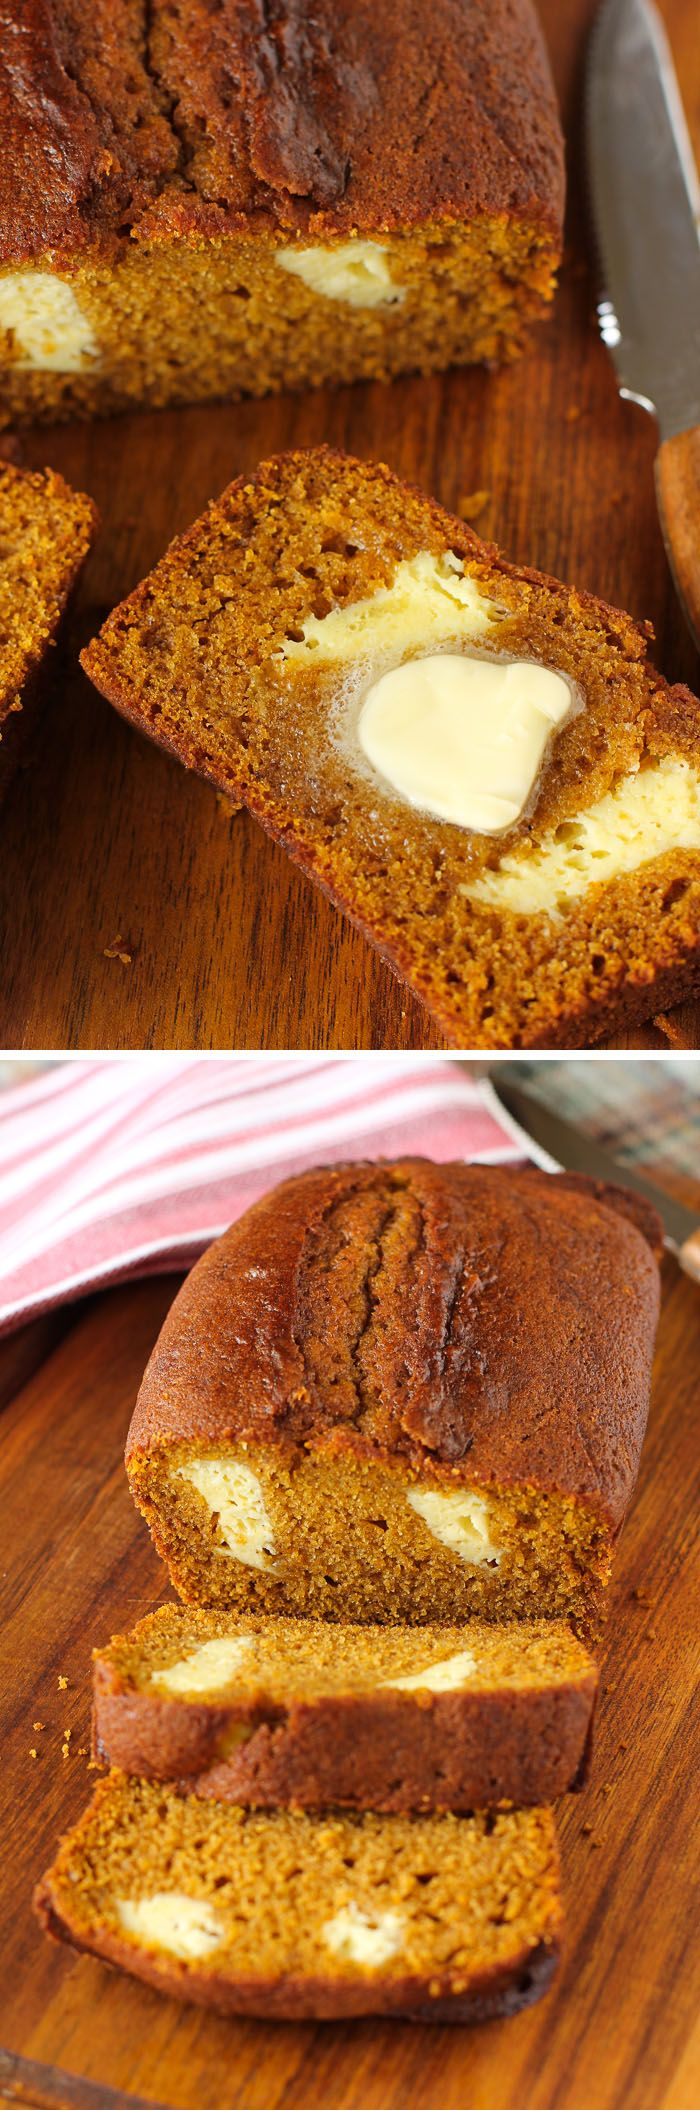 Cheesecake-Stuffed Pumpkin Bread: This bread is so moist and delicious, especially with a schmear of softened butter. Don't settle for cheesecake OR pumpkin bread when you could have both!